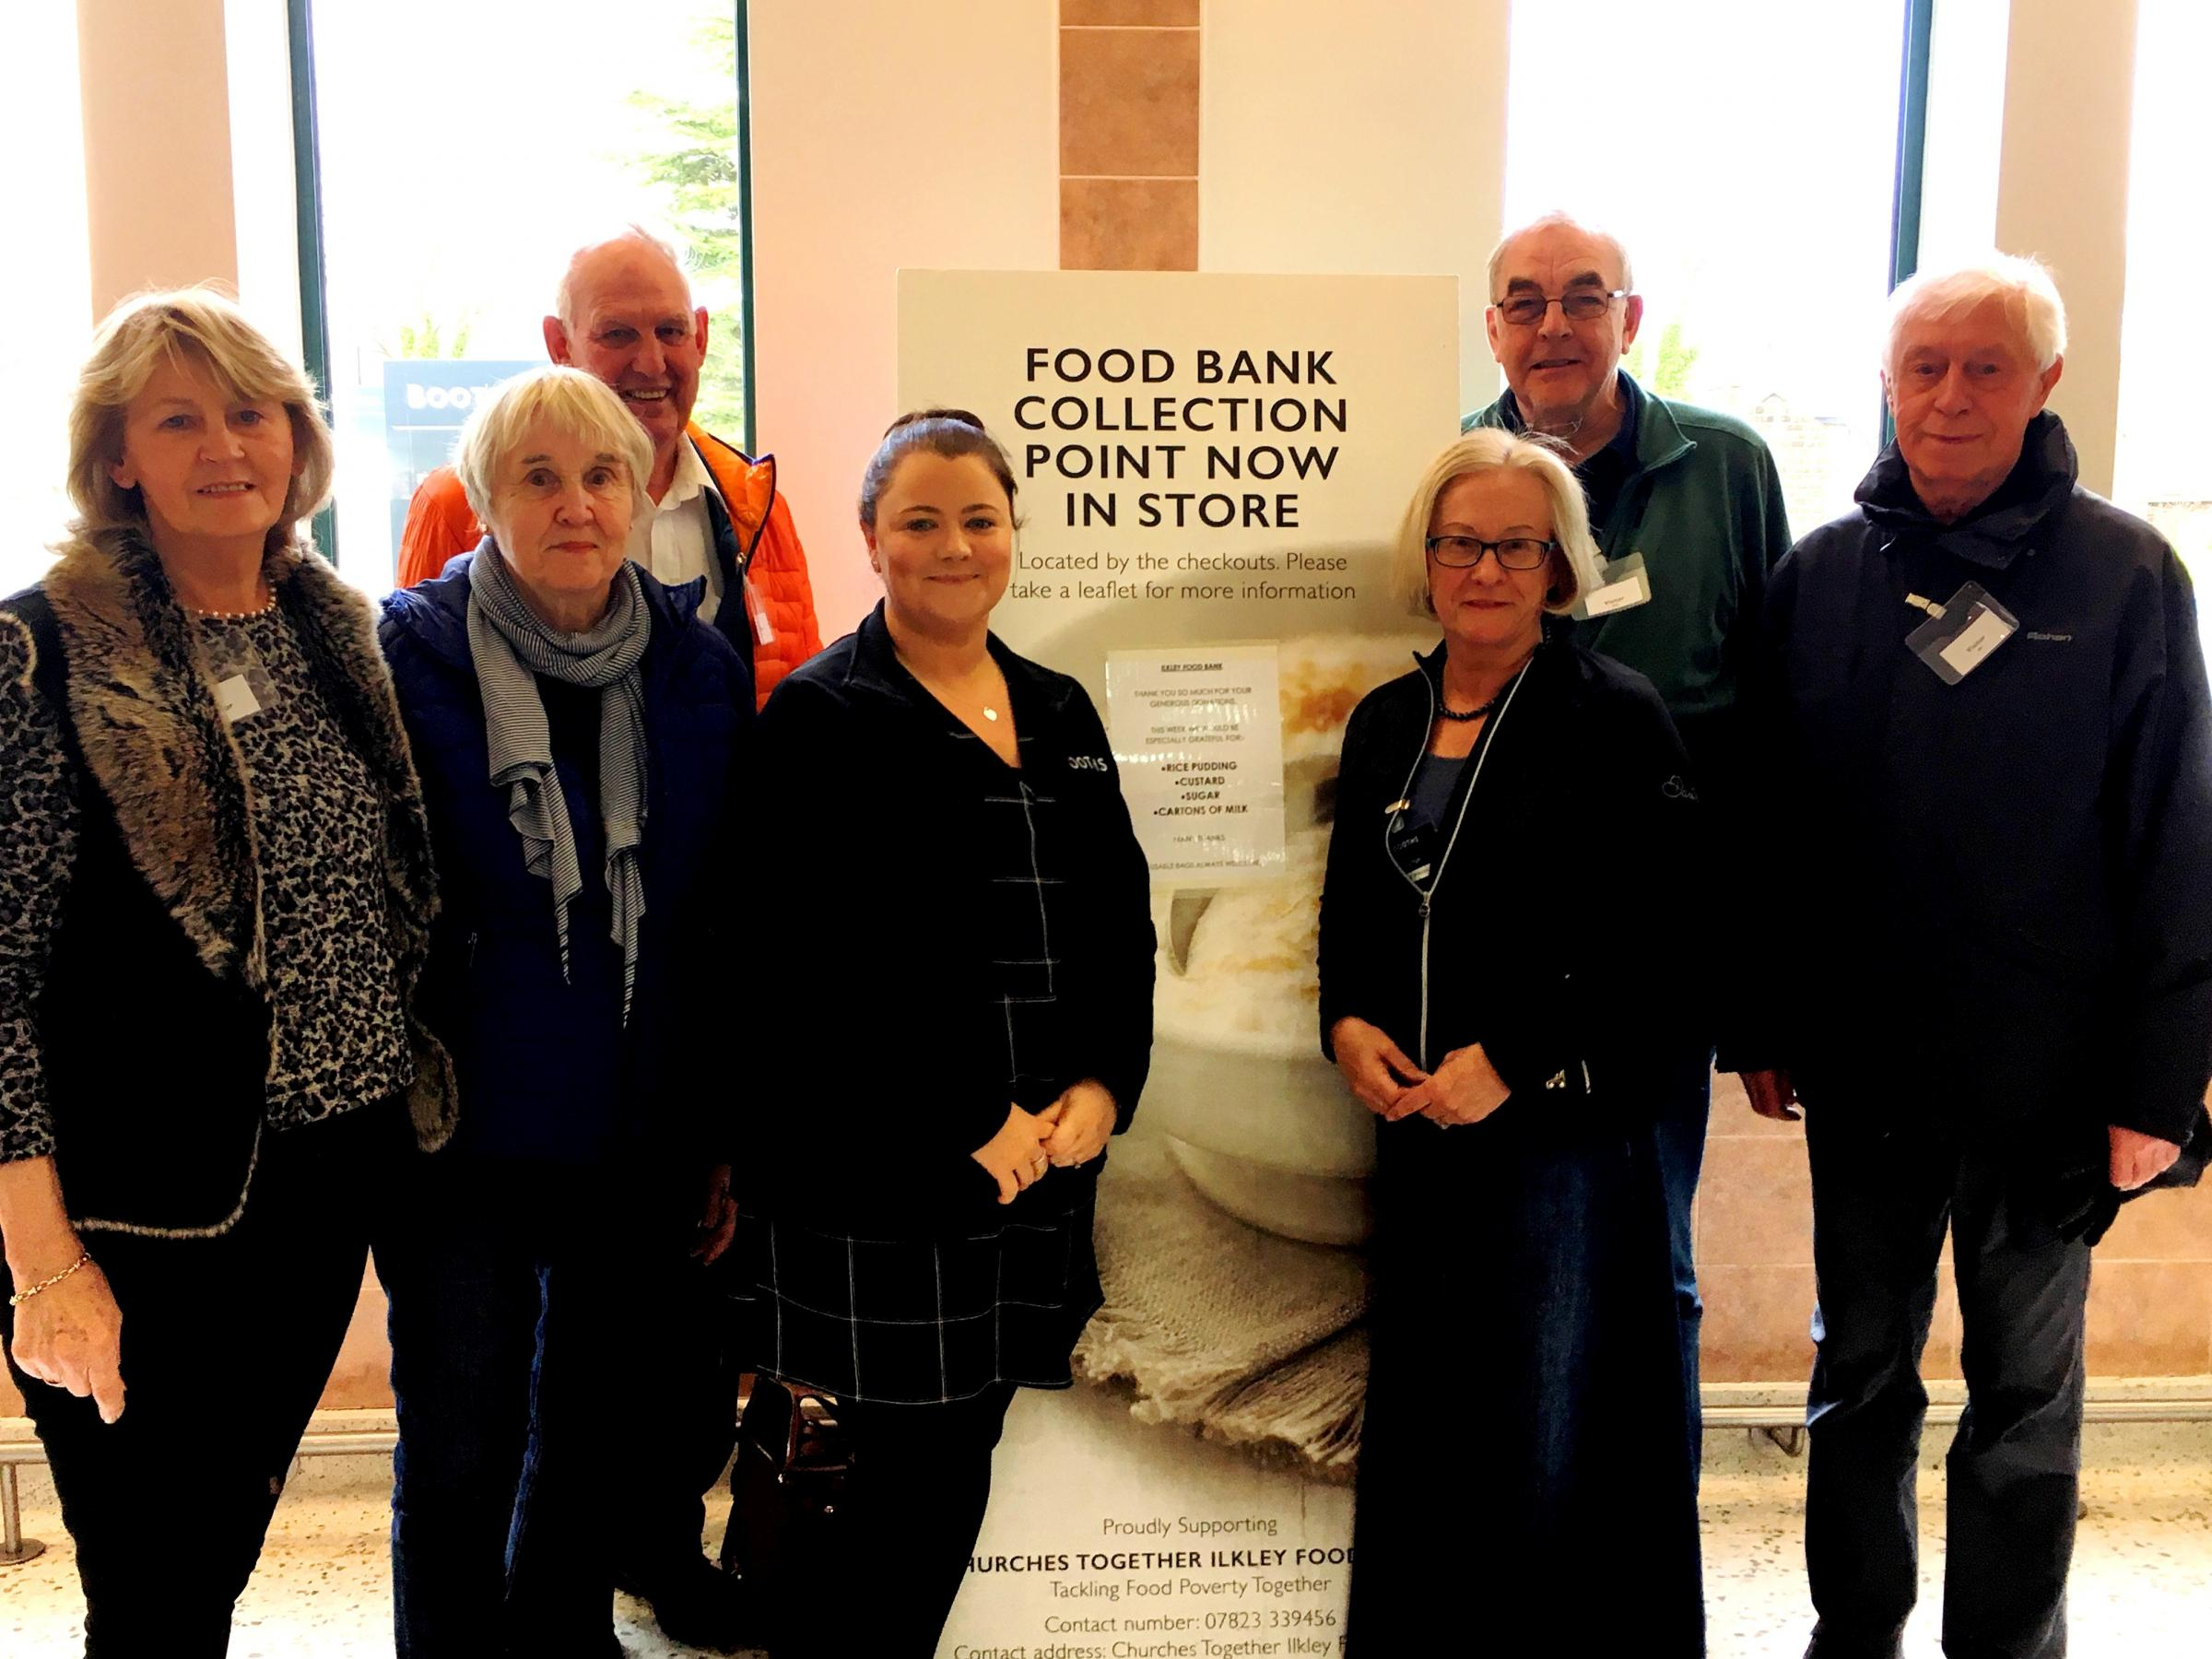 Rachel Costello, Manager of Booths, Ilkley (centre left) with some of the Food Bank Volunteers pictured in store following their training.